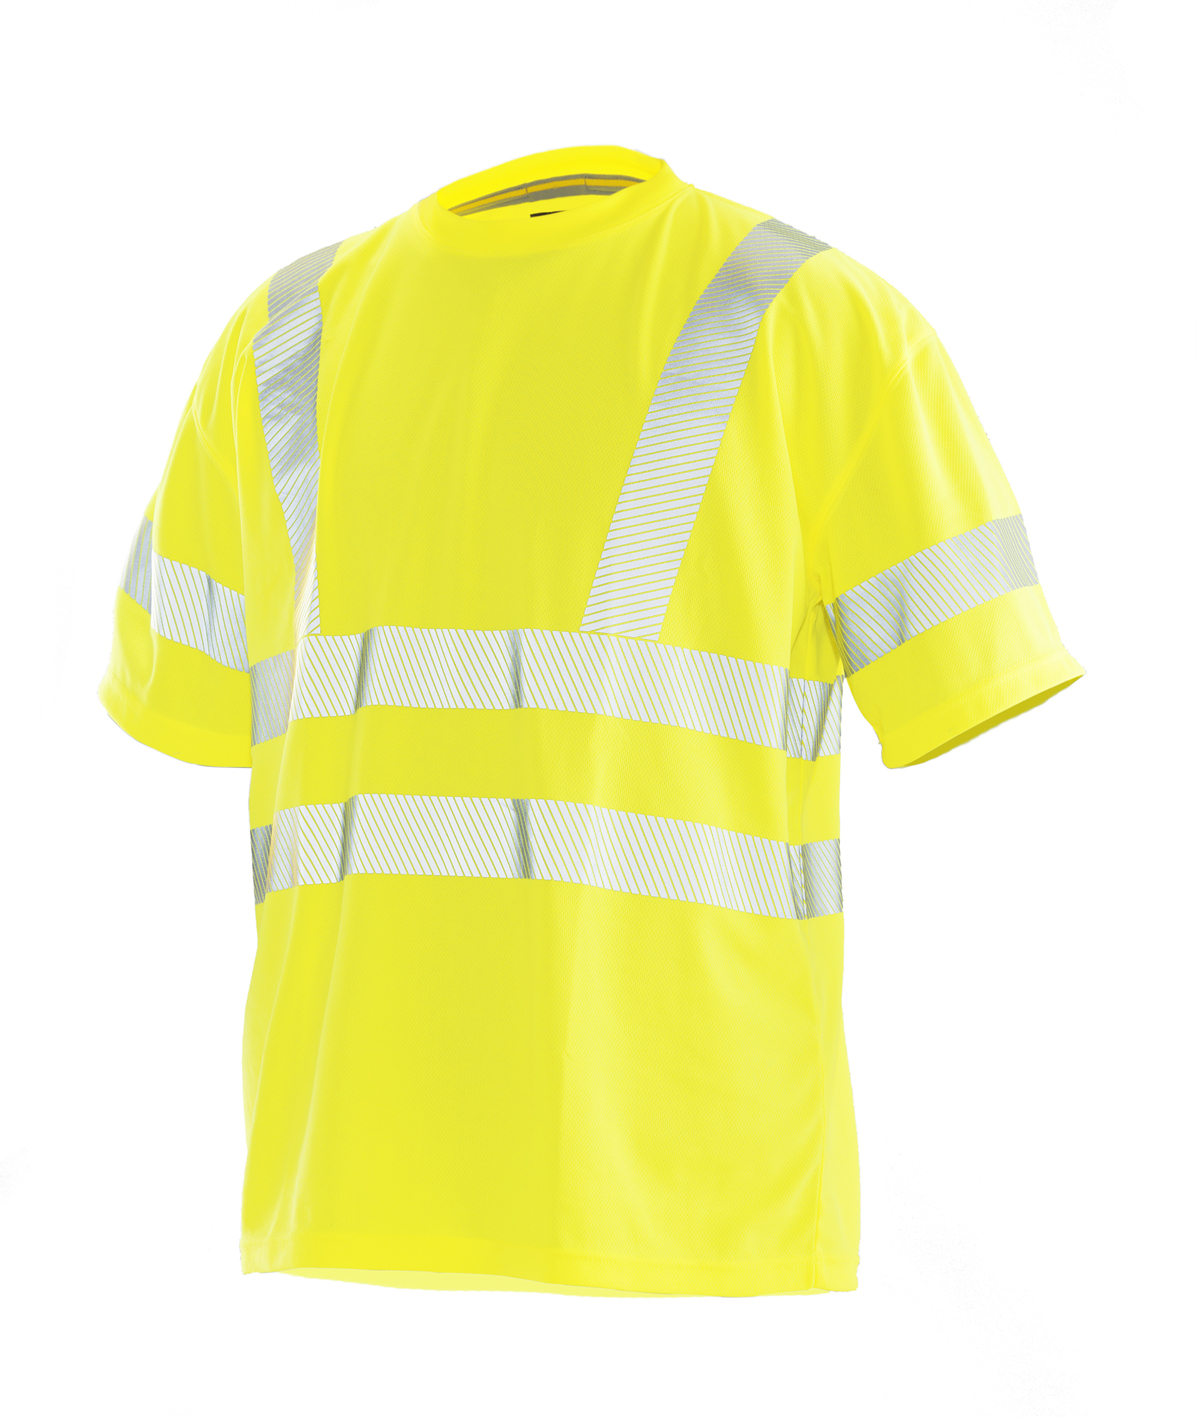 High visibility t-shirt technical